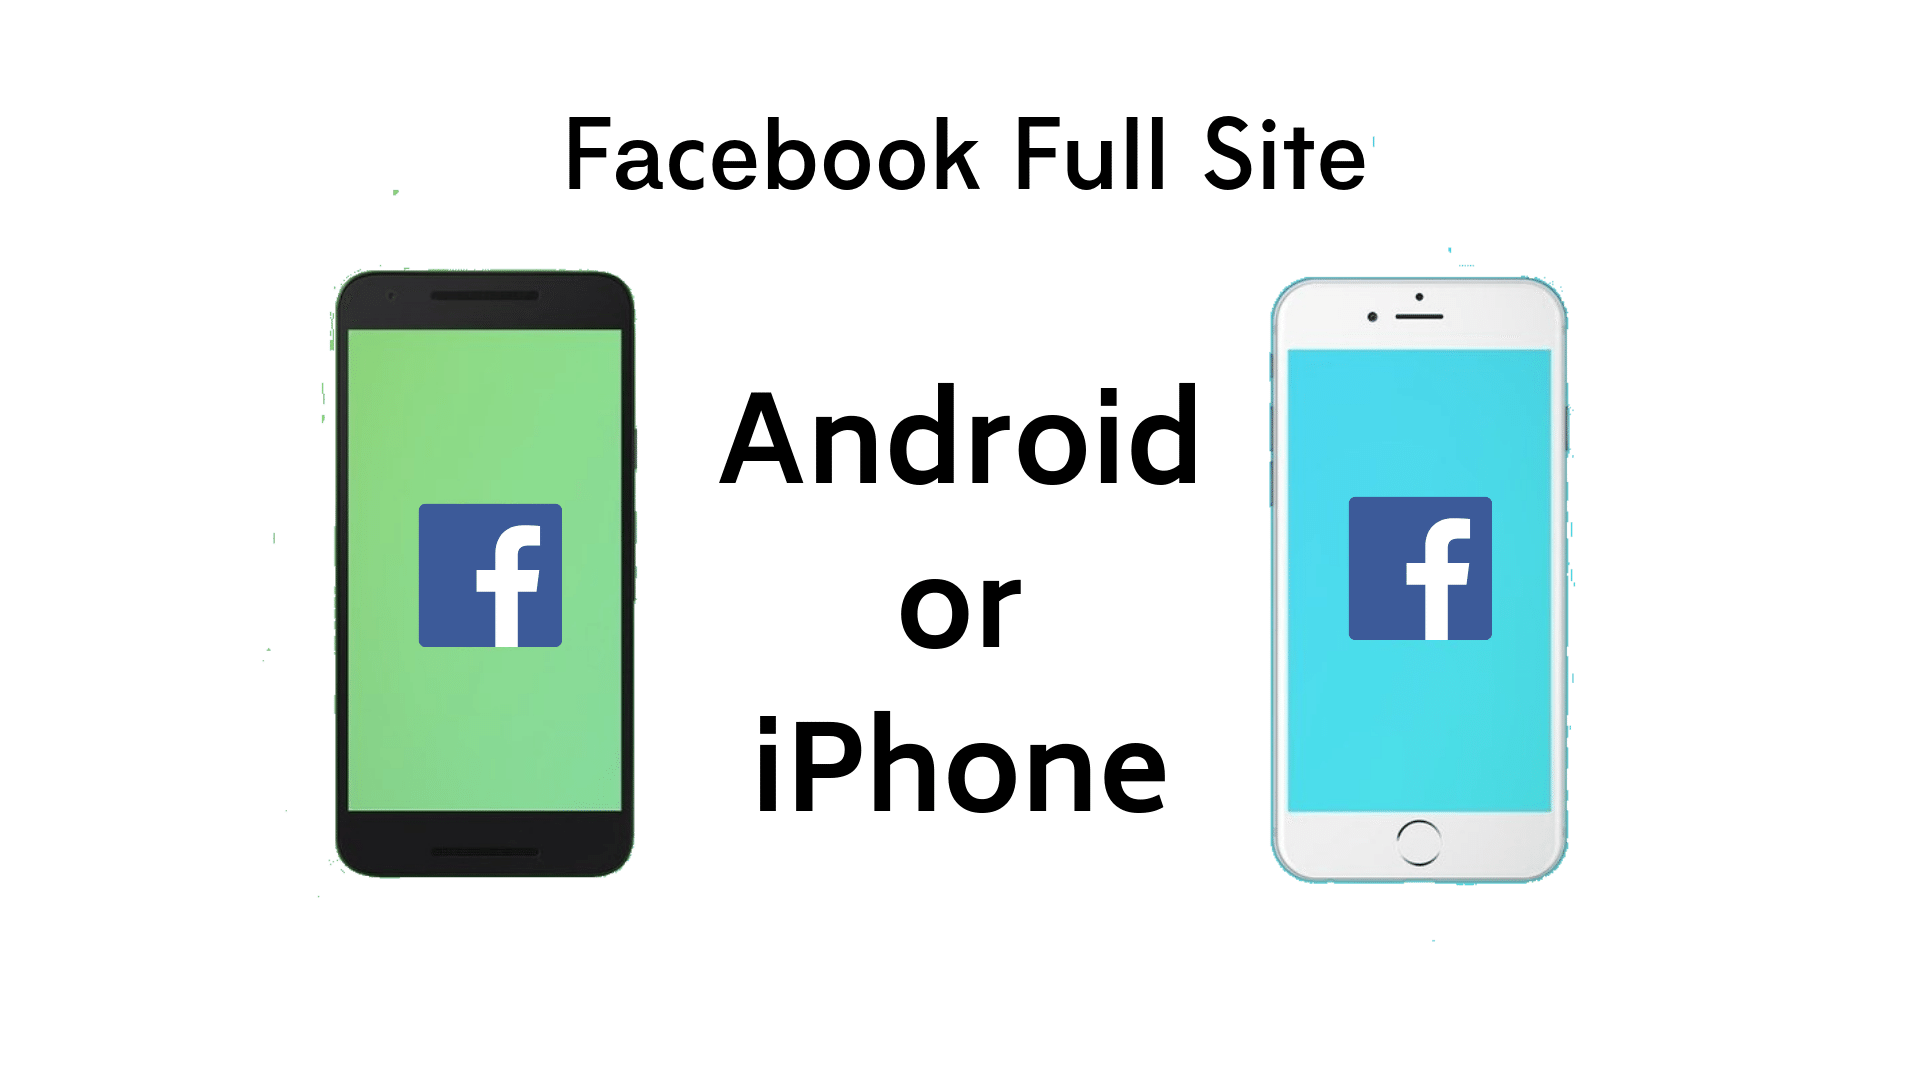 Facebook Full Site Android or iPhone